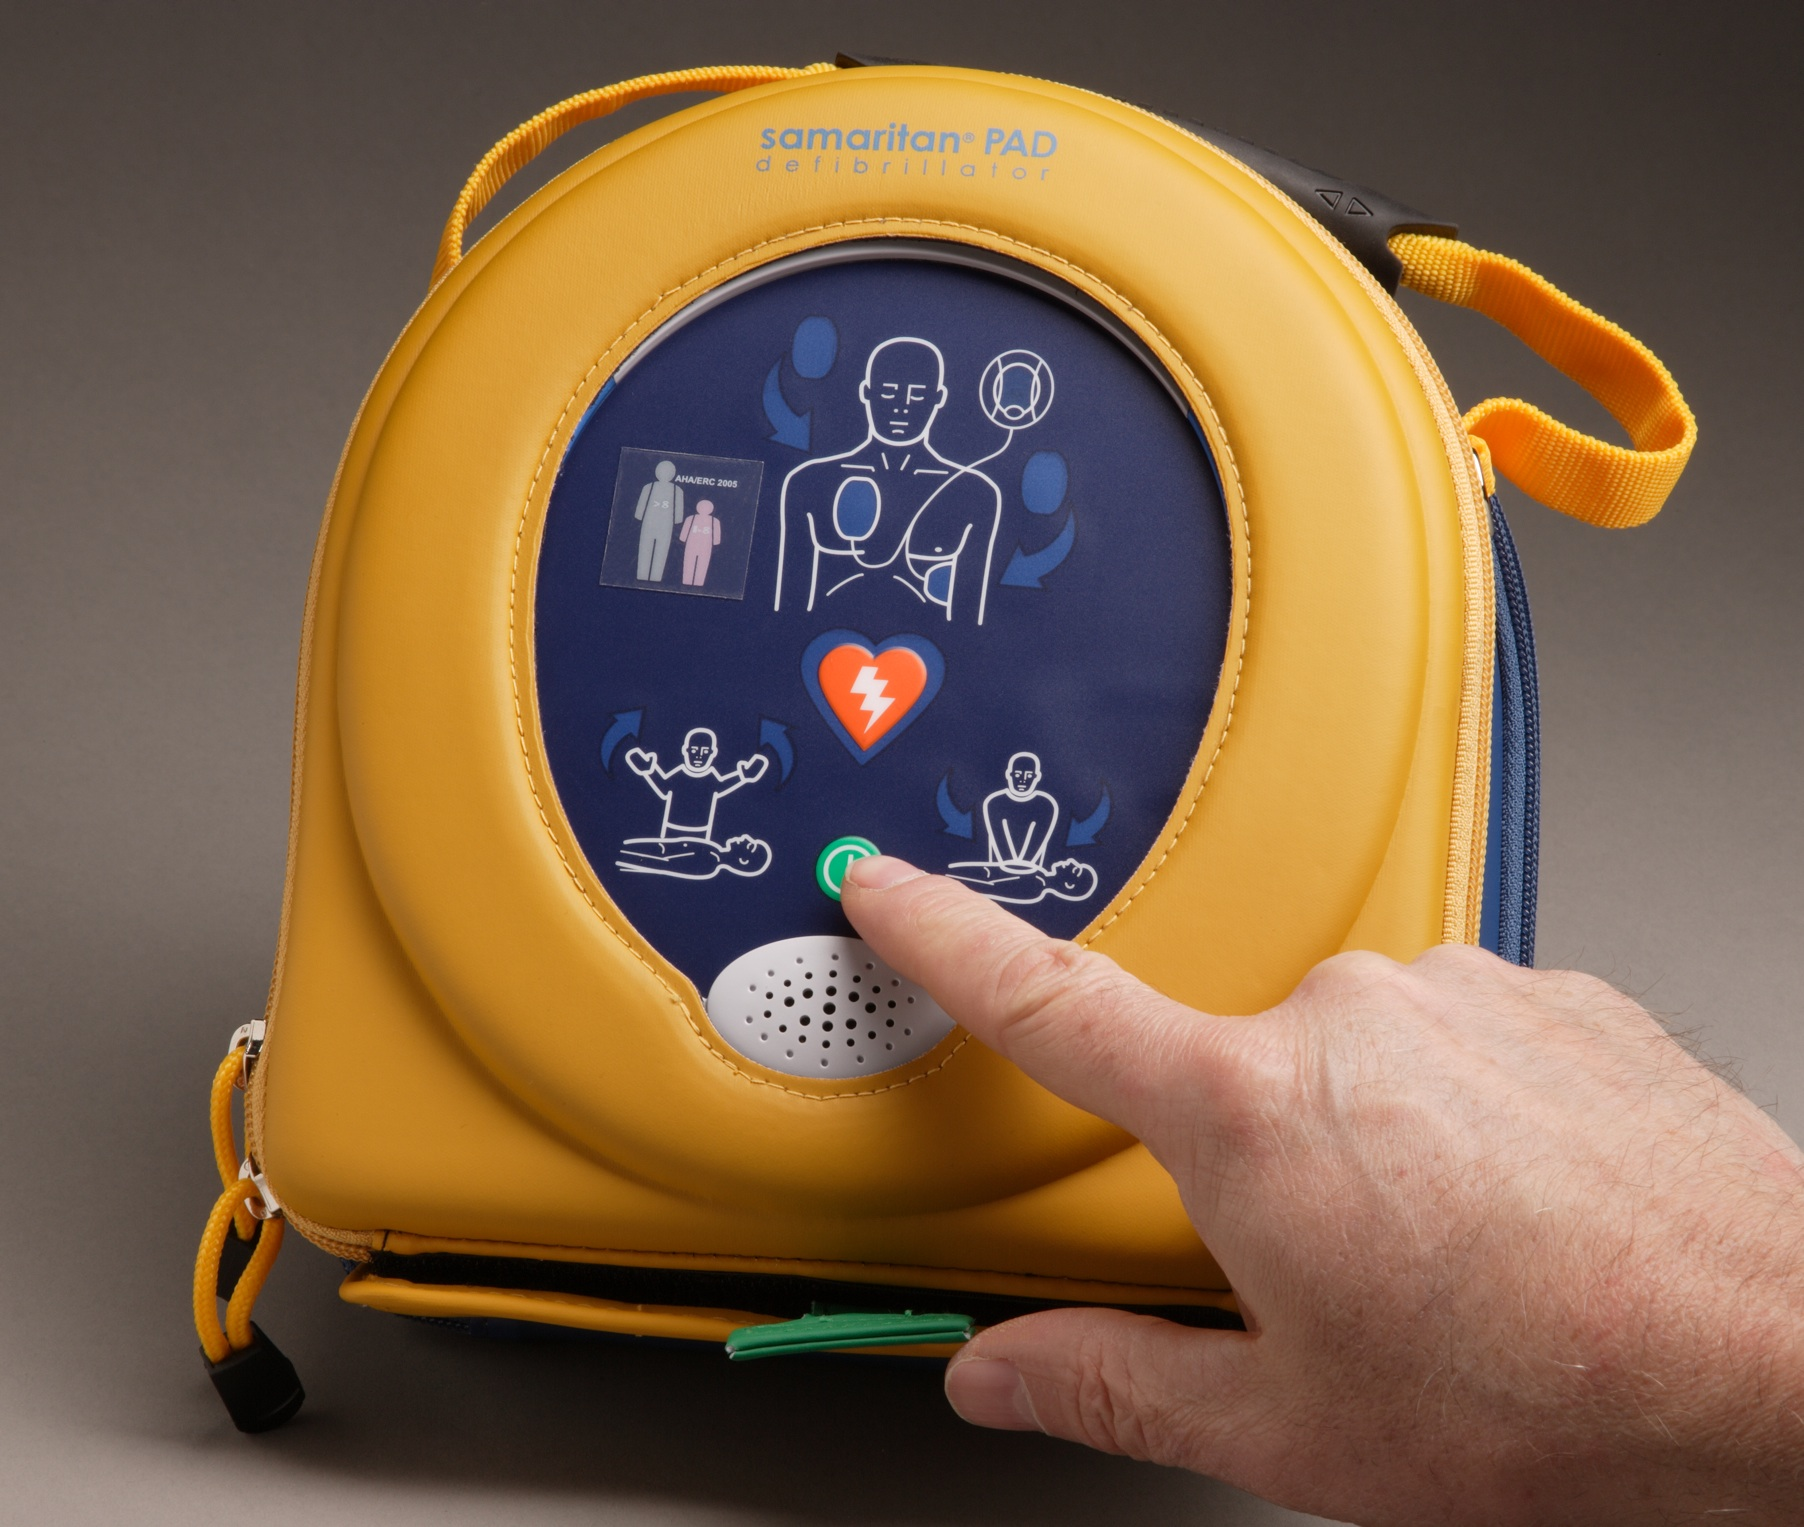 San Jose Cpr Certification Now Offers A Free American Heart